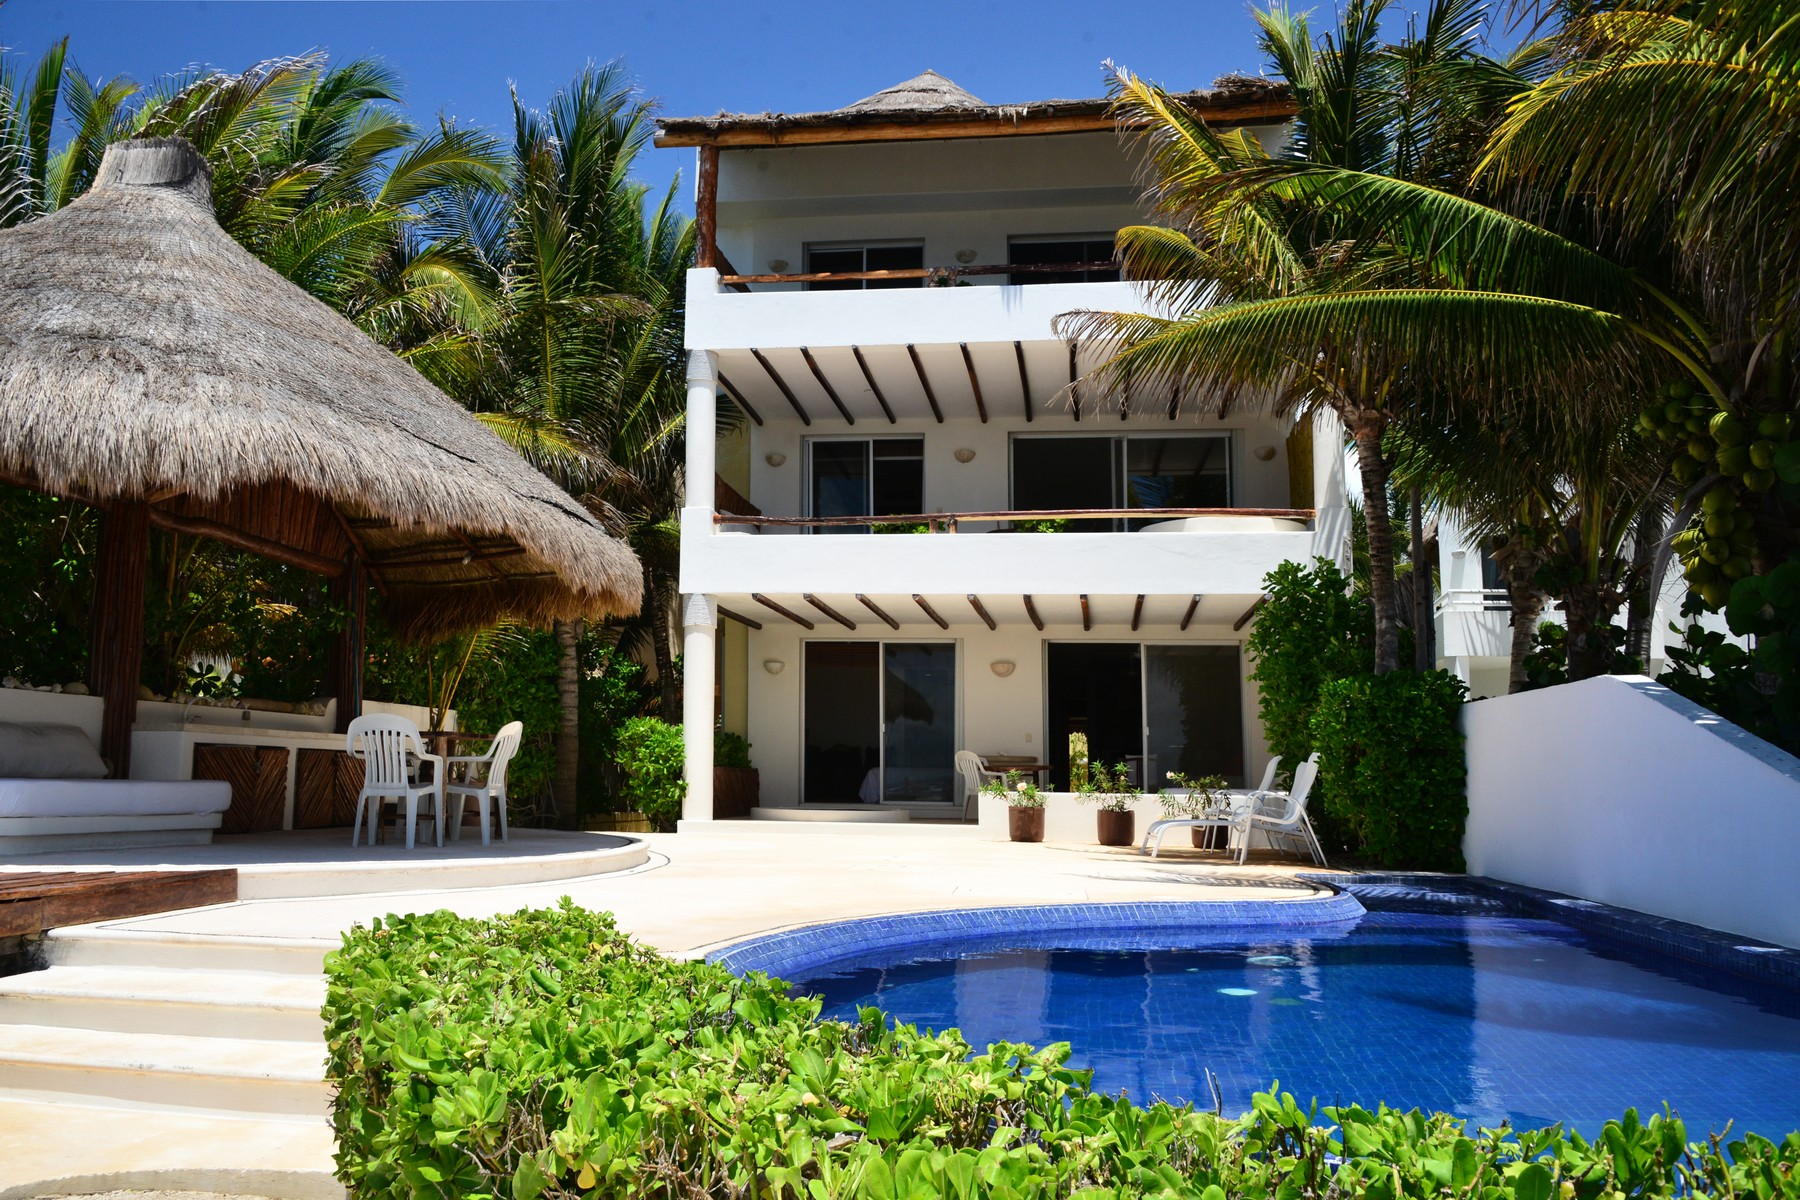 Apartment for Sale at SEAFRONT PARADISE UNIT #101 Seafront Paradise – Unit #101 Predio Maria Irene, Supermzna 12, Mzna 21 13 Puerto Morelos, 77930 Mexico